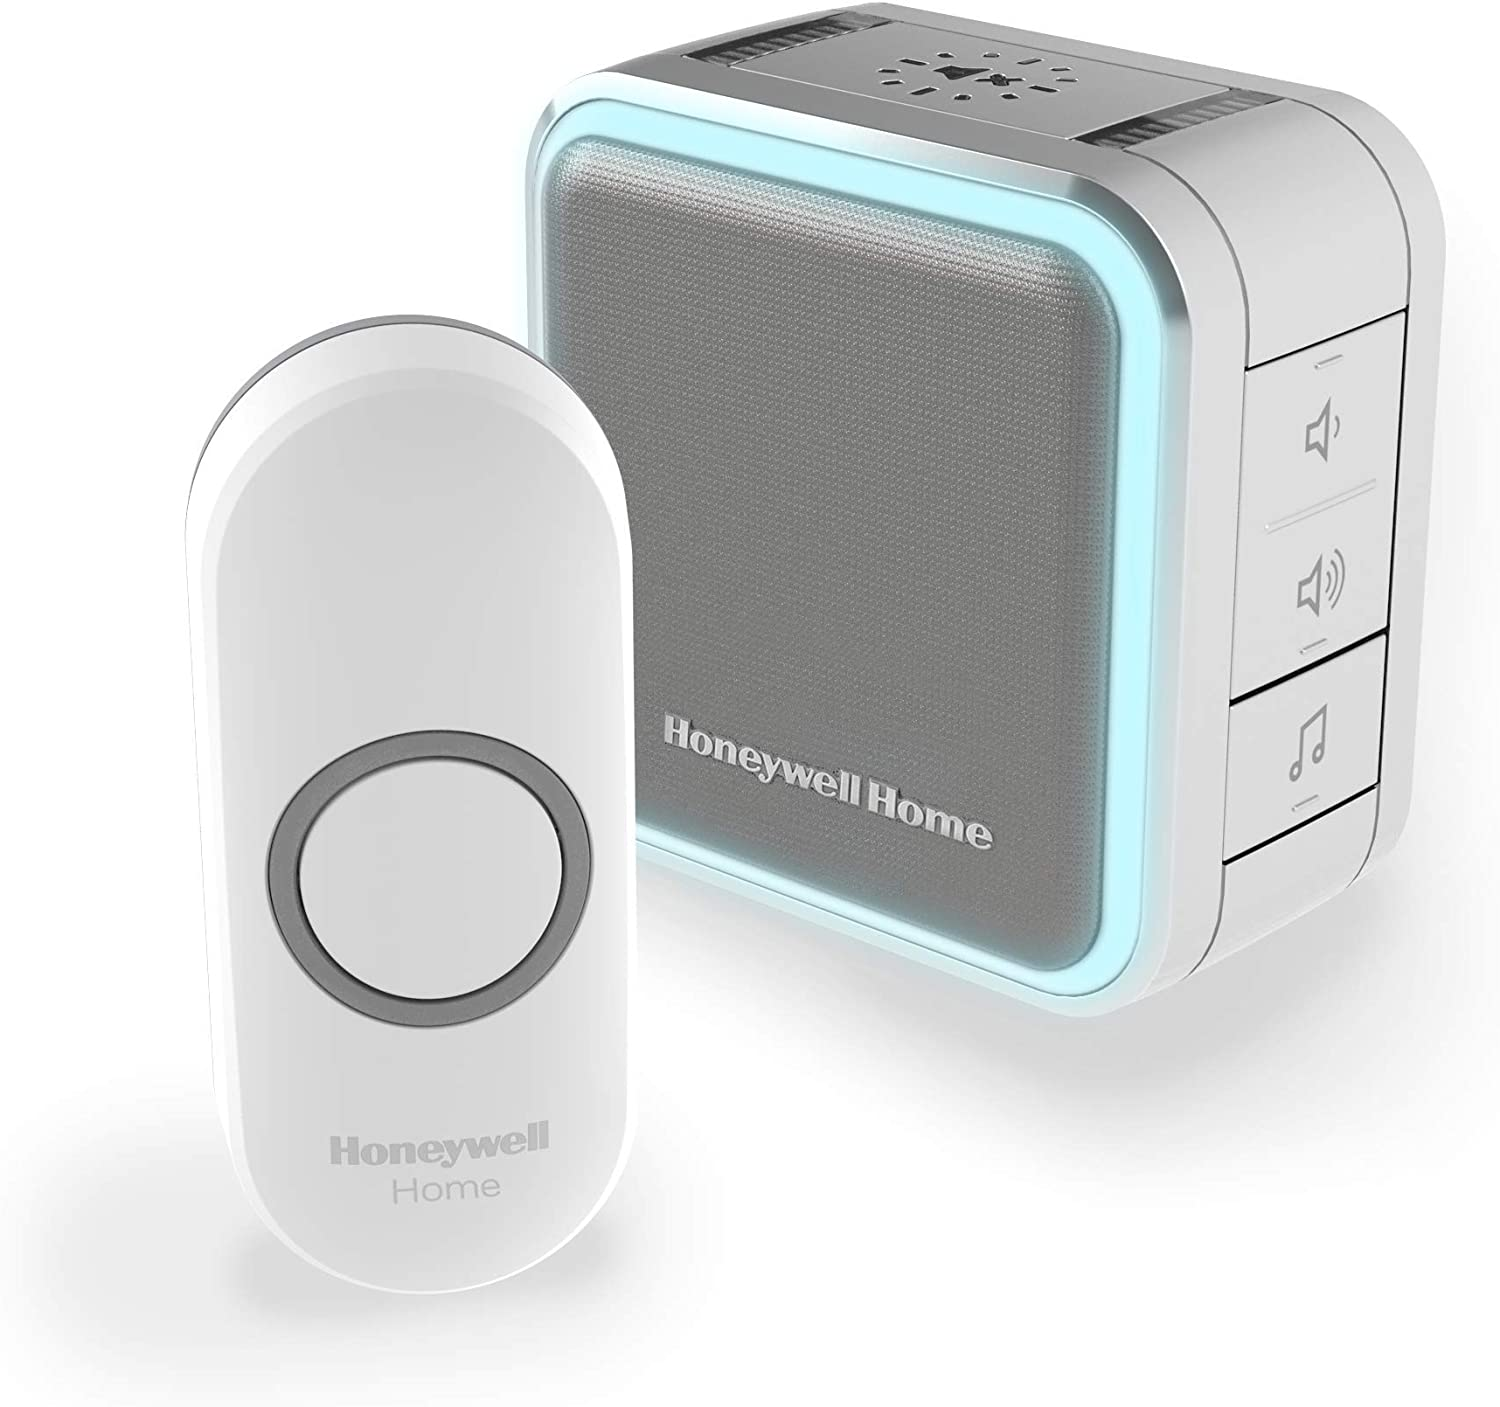 Honeywell Home All Popular product items in the store RDWL515P2000 E Series Portable Wireless 5 Doorbel